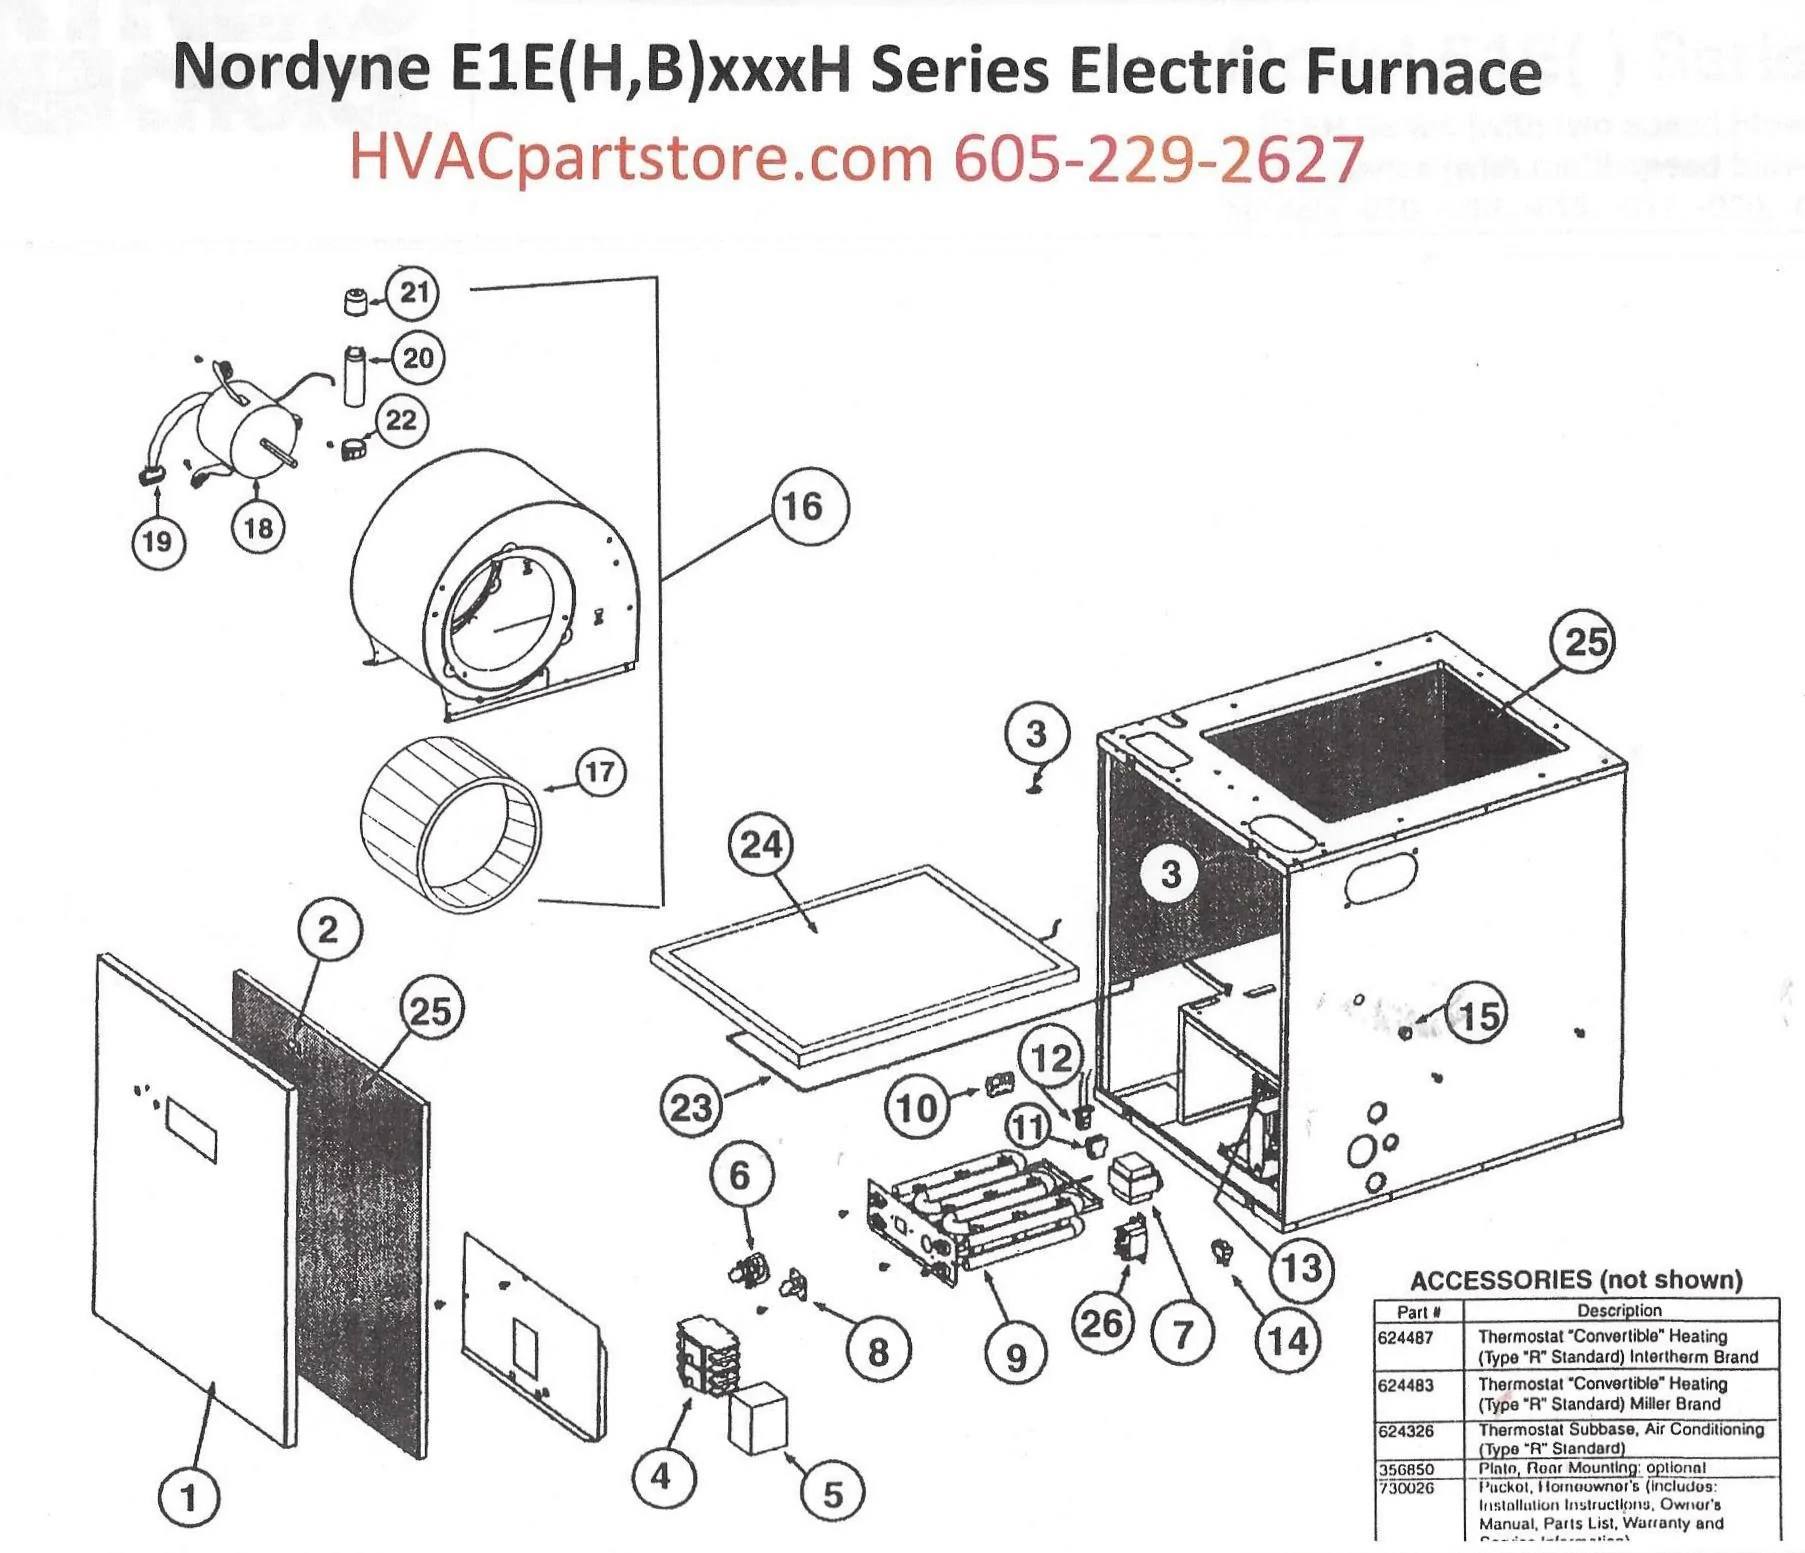 nordyne furnace wiring diagram for fan wiring library rh 10 winebottlecrafts org ruud water heater parts diagram ruud furnace parts manual [ 1805 x 1553 Pixel ]